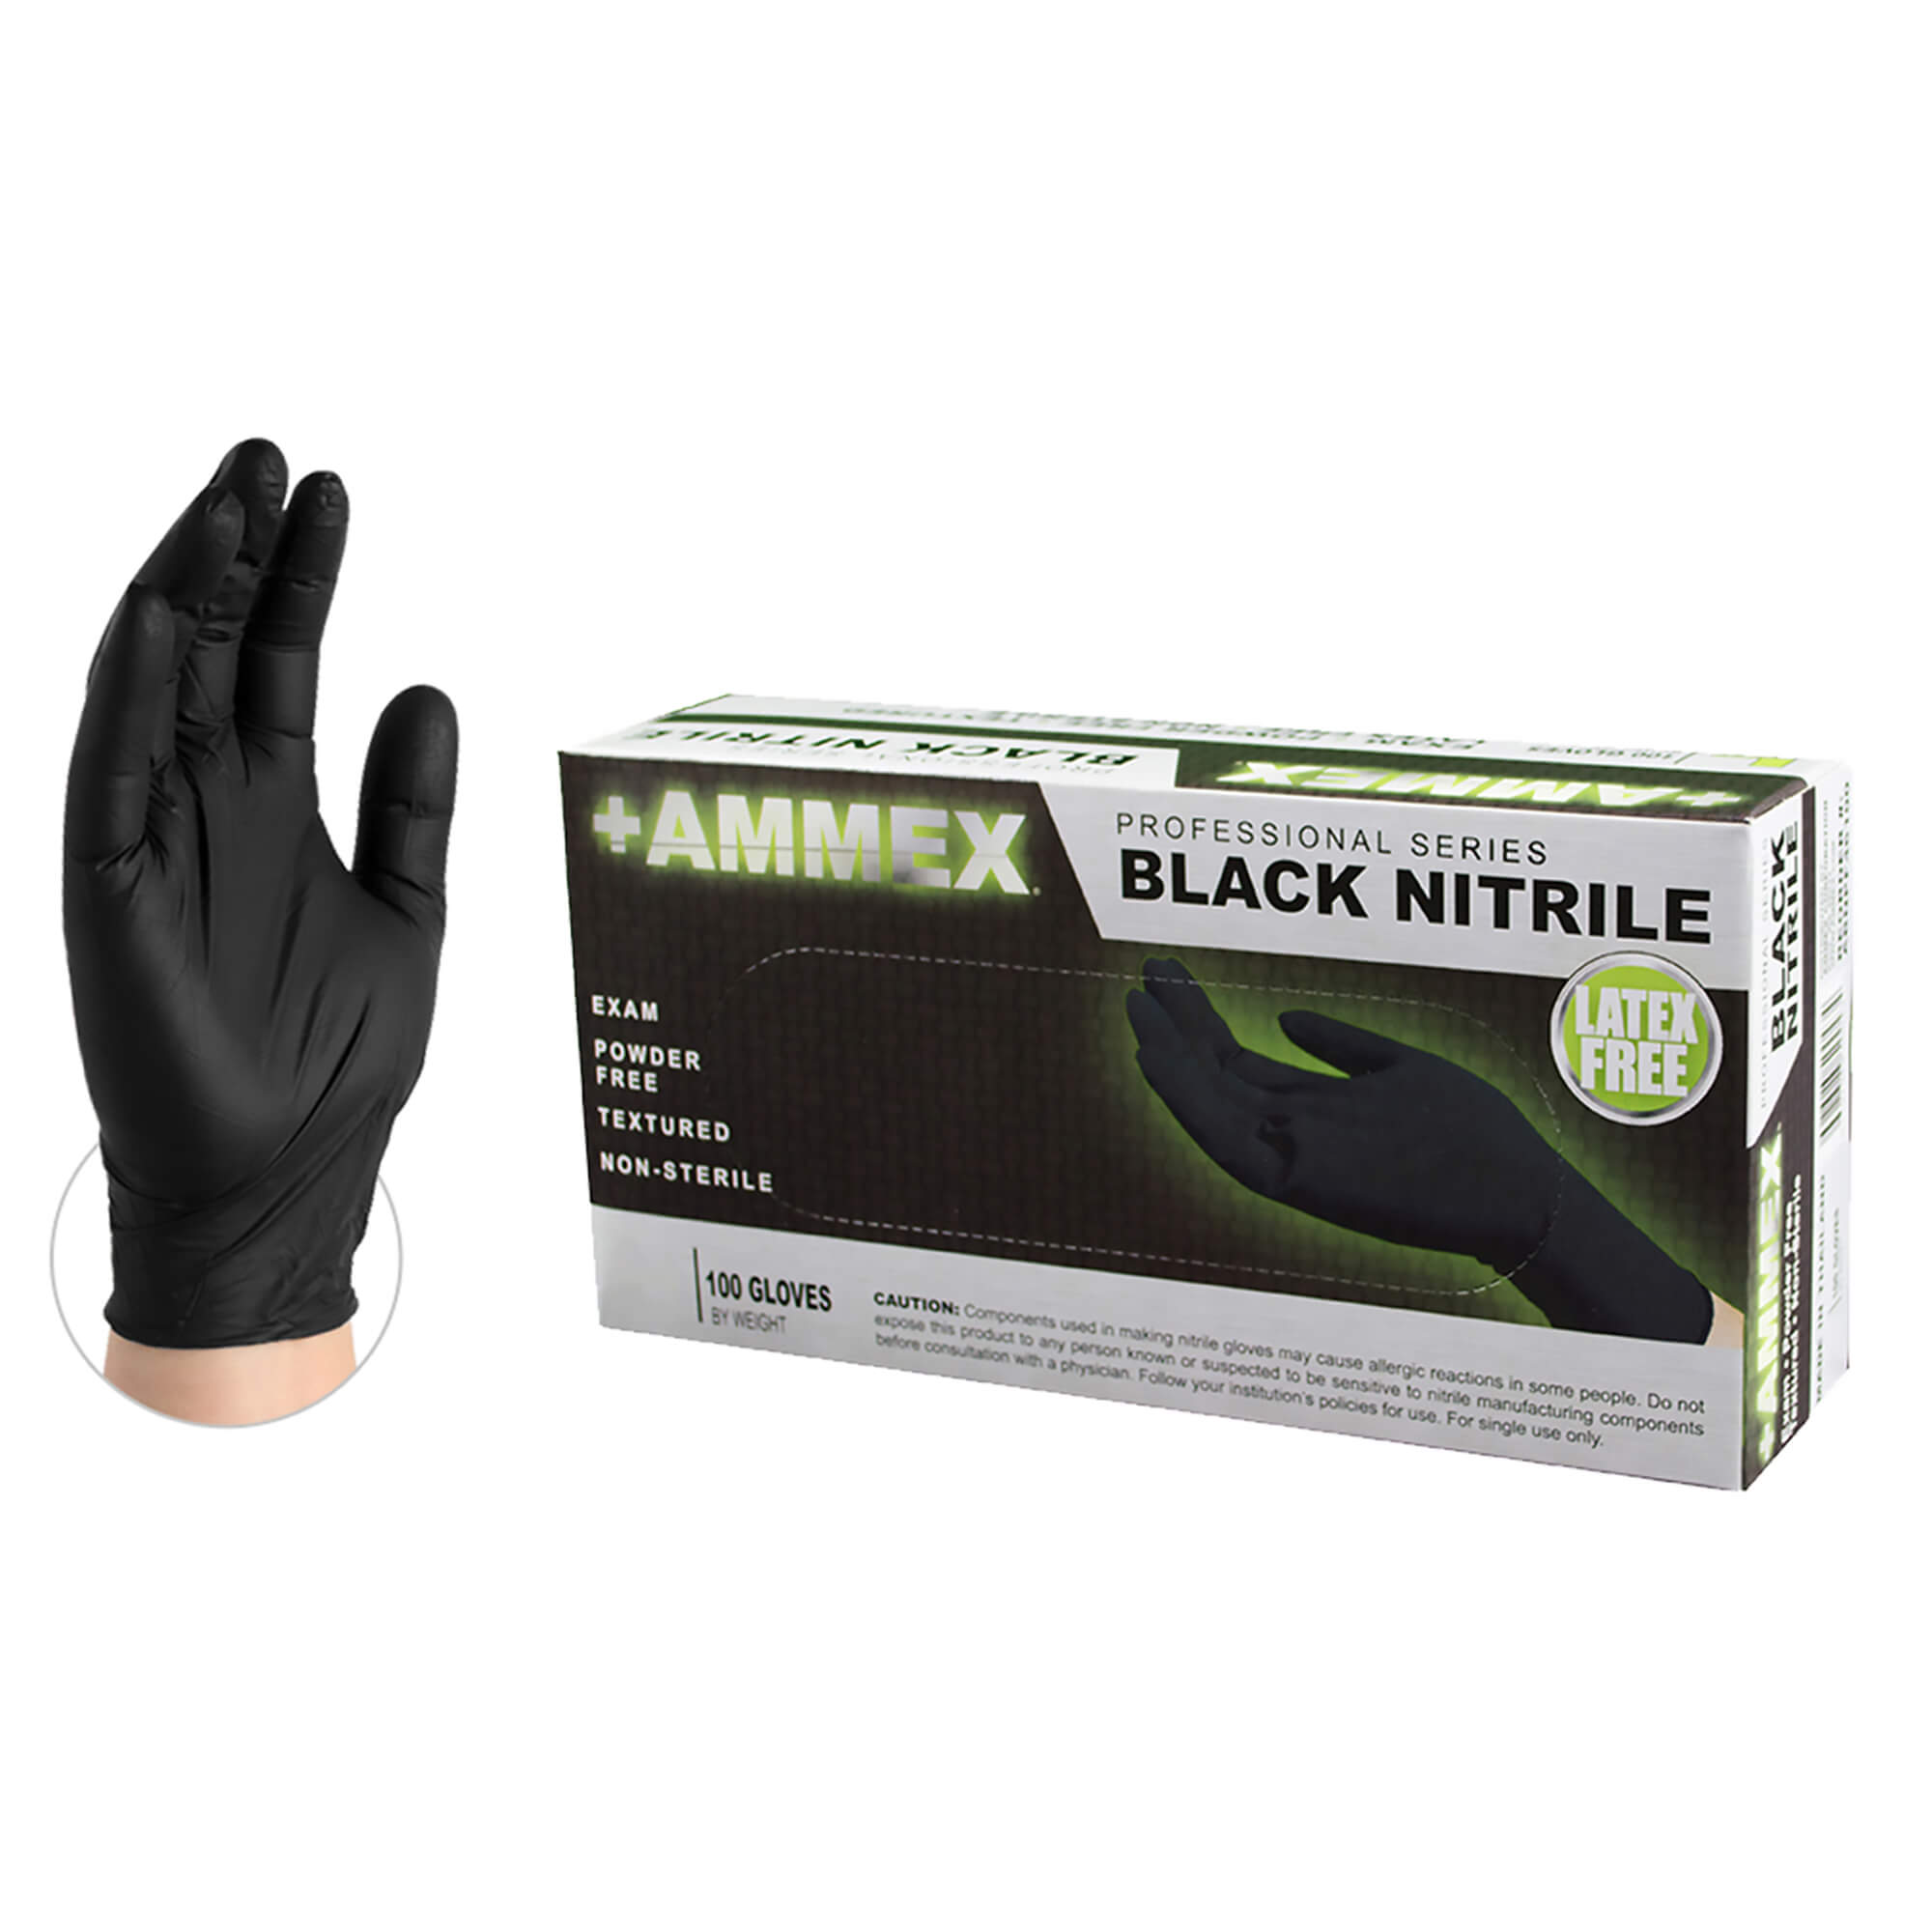 Black Medical Nitrile Exam Latex Free Disposable Gloves-Box of 100 Gloves